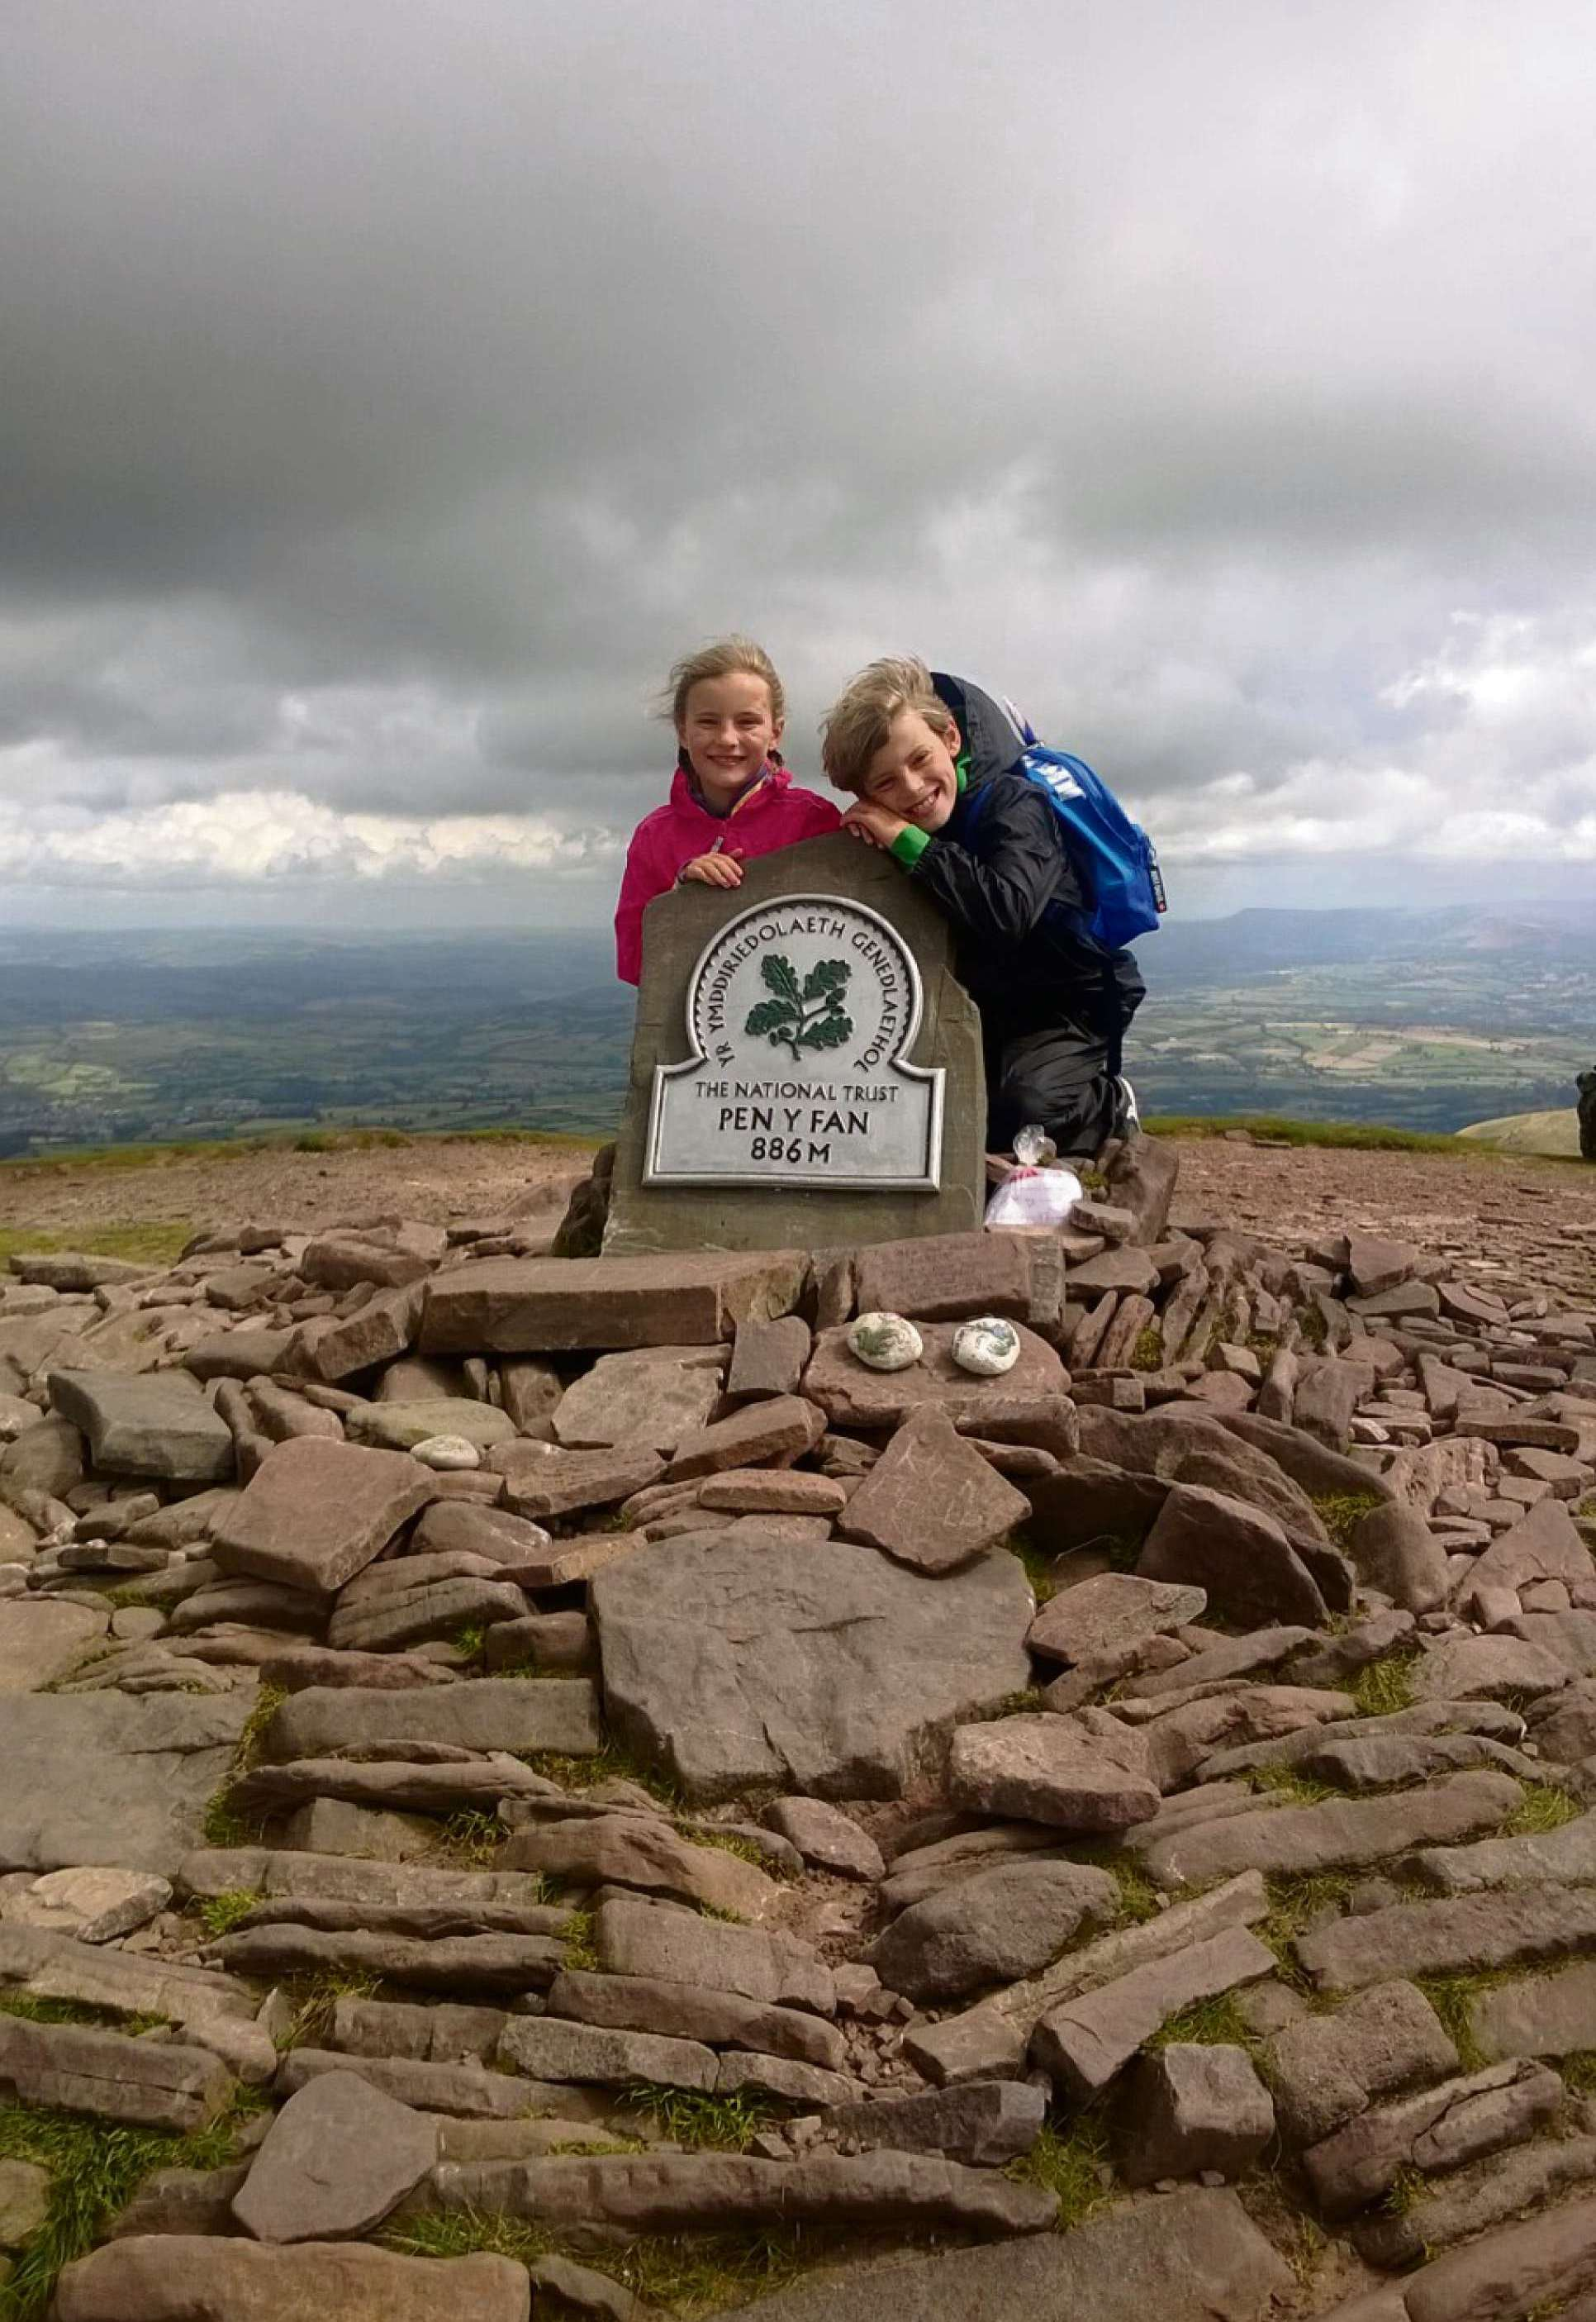 YOUNG MOUNTAIN CLIMBERS: Alfie and Annie Framer scaled Pen y Fan, south Wales' highest peak, earlier this mo